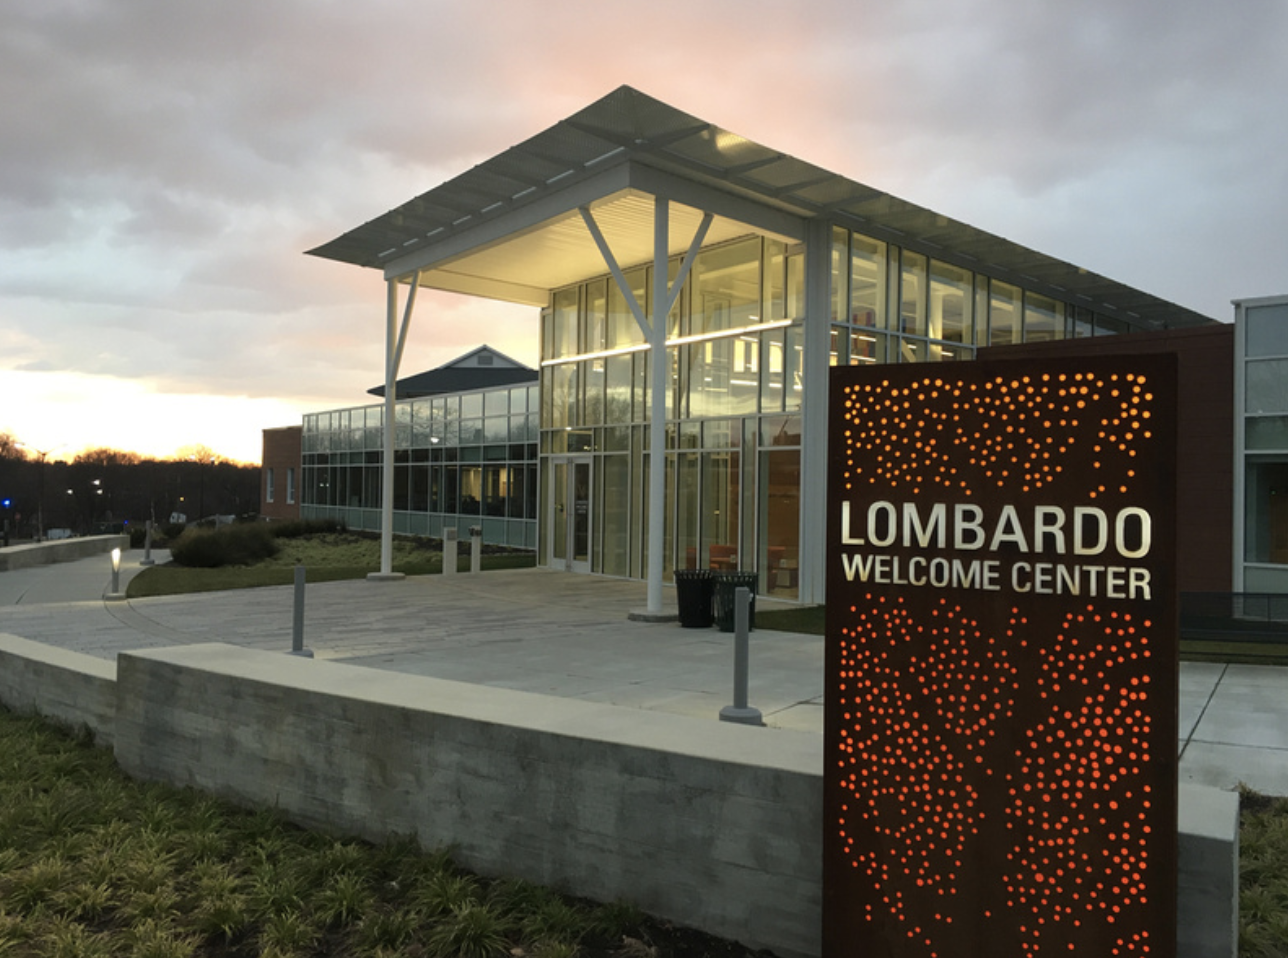 Lombardo Welcome Center, Millersville University. (Source: Millersville U.)